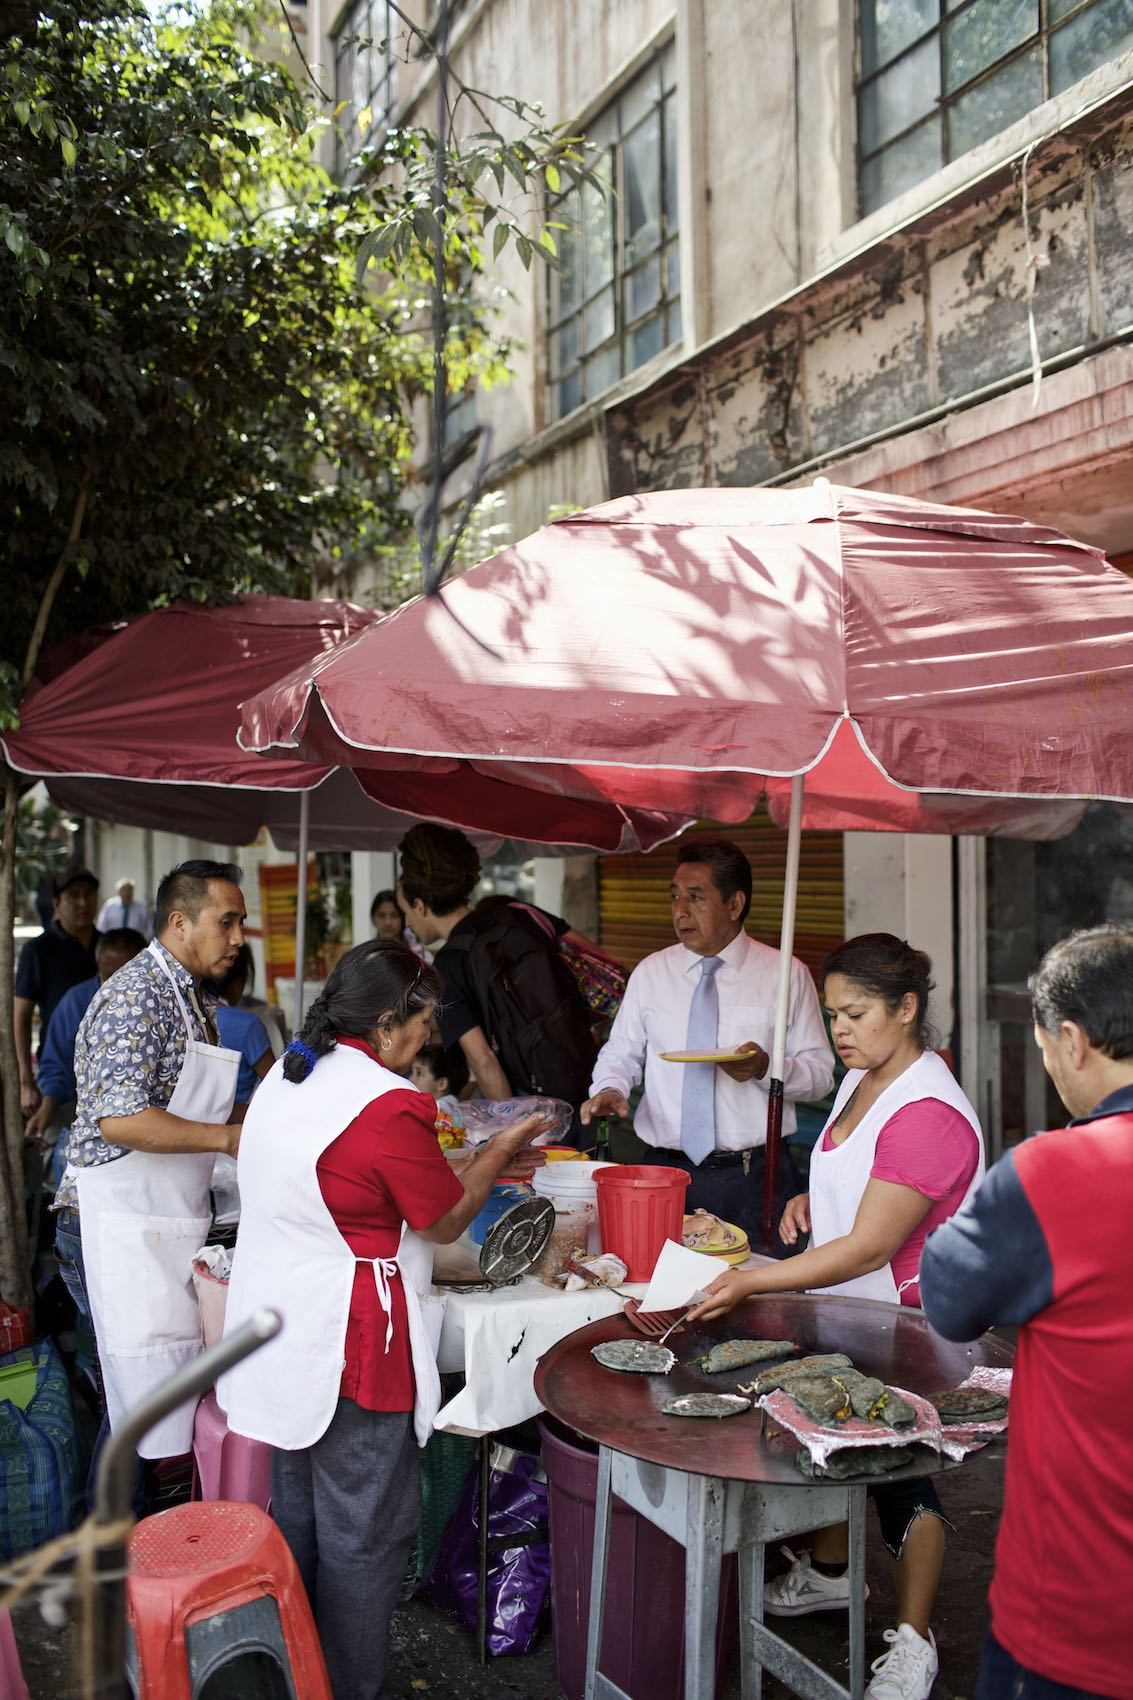 Jody Horton Photography - Street vendors cooking and selling food in Mexico City.